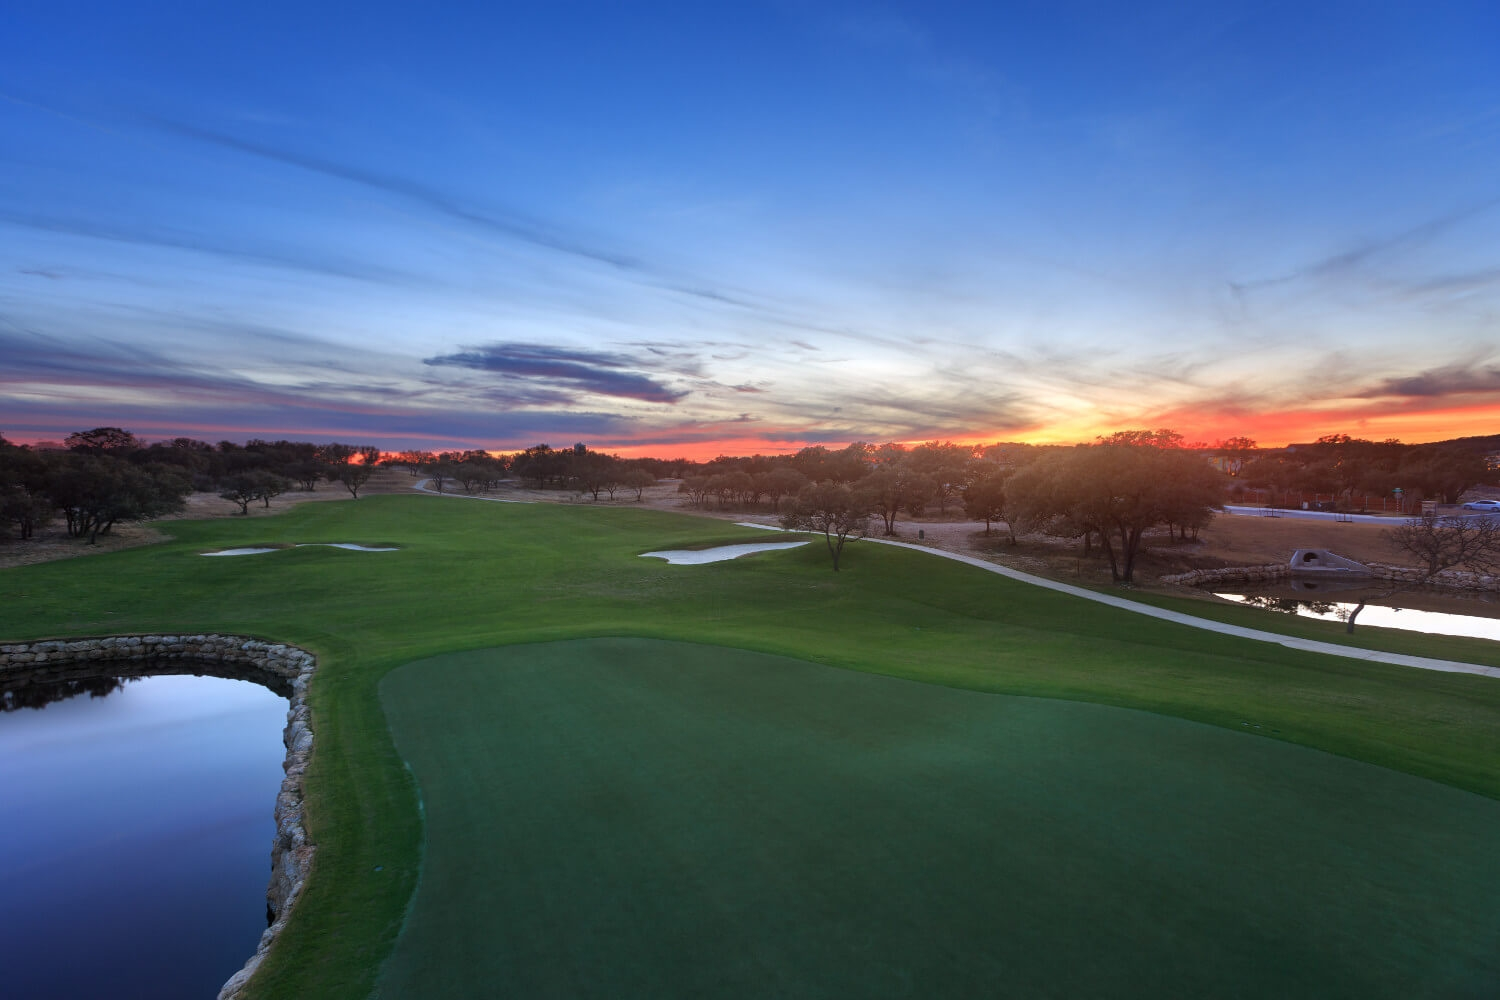 TROON GOLF-MANAGED KISSING TREE GOLF CLUB OPENS IN SAN MARCOS, TEXAS